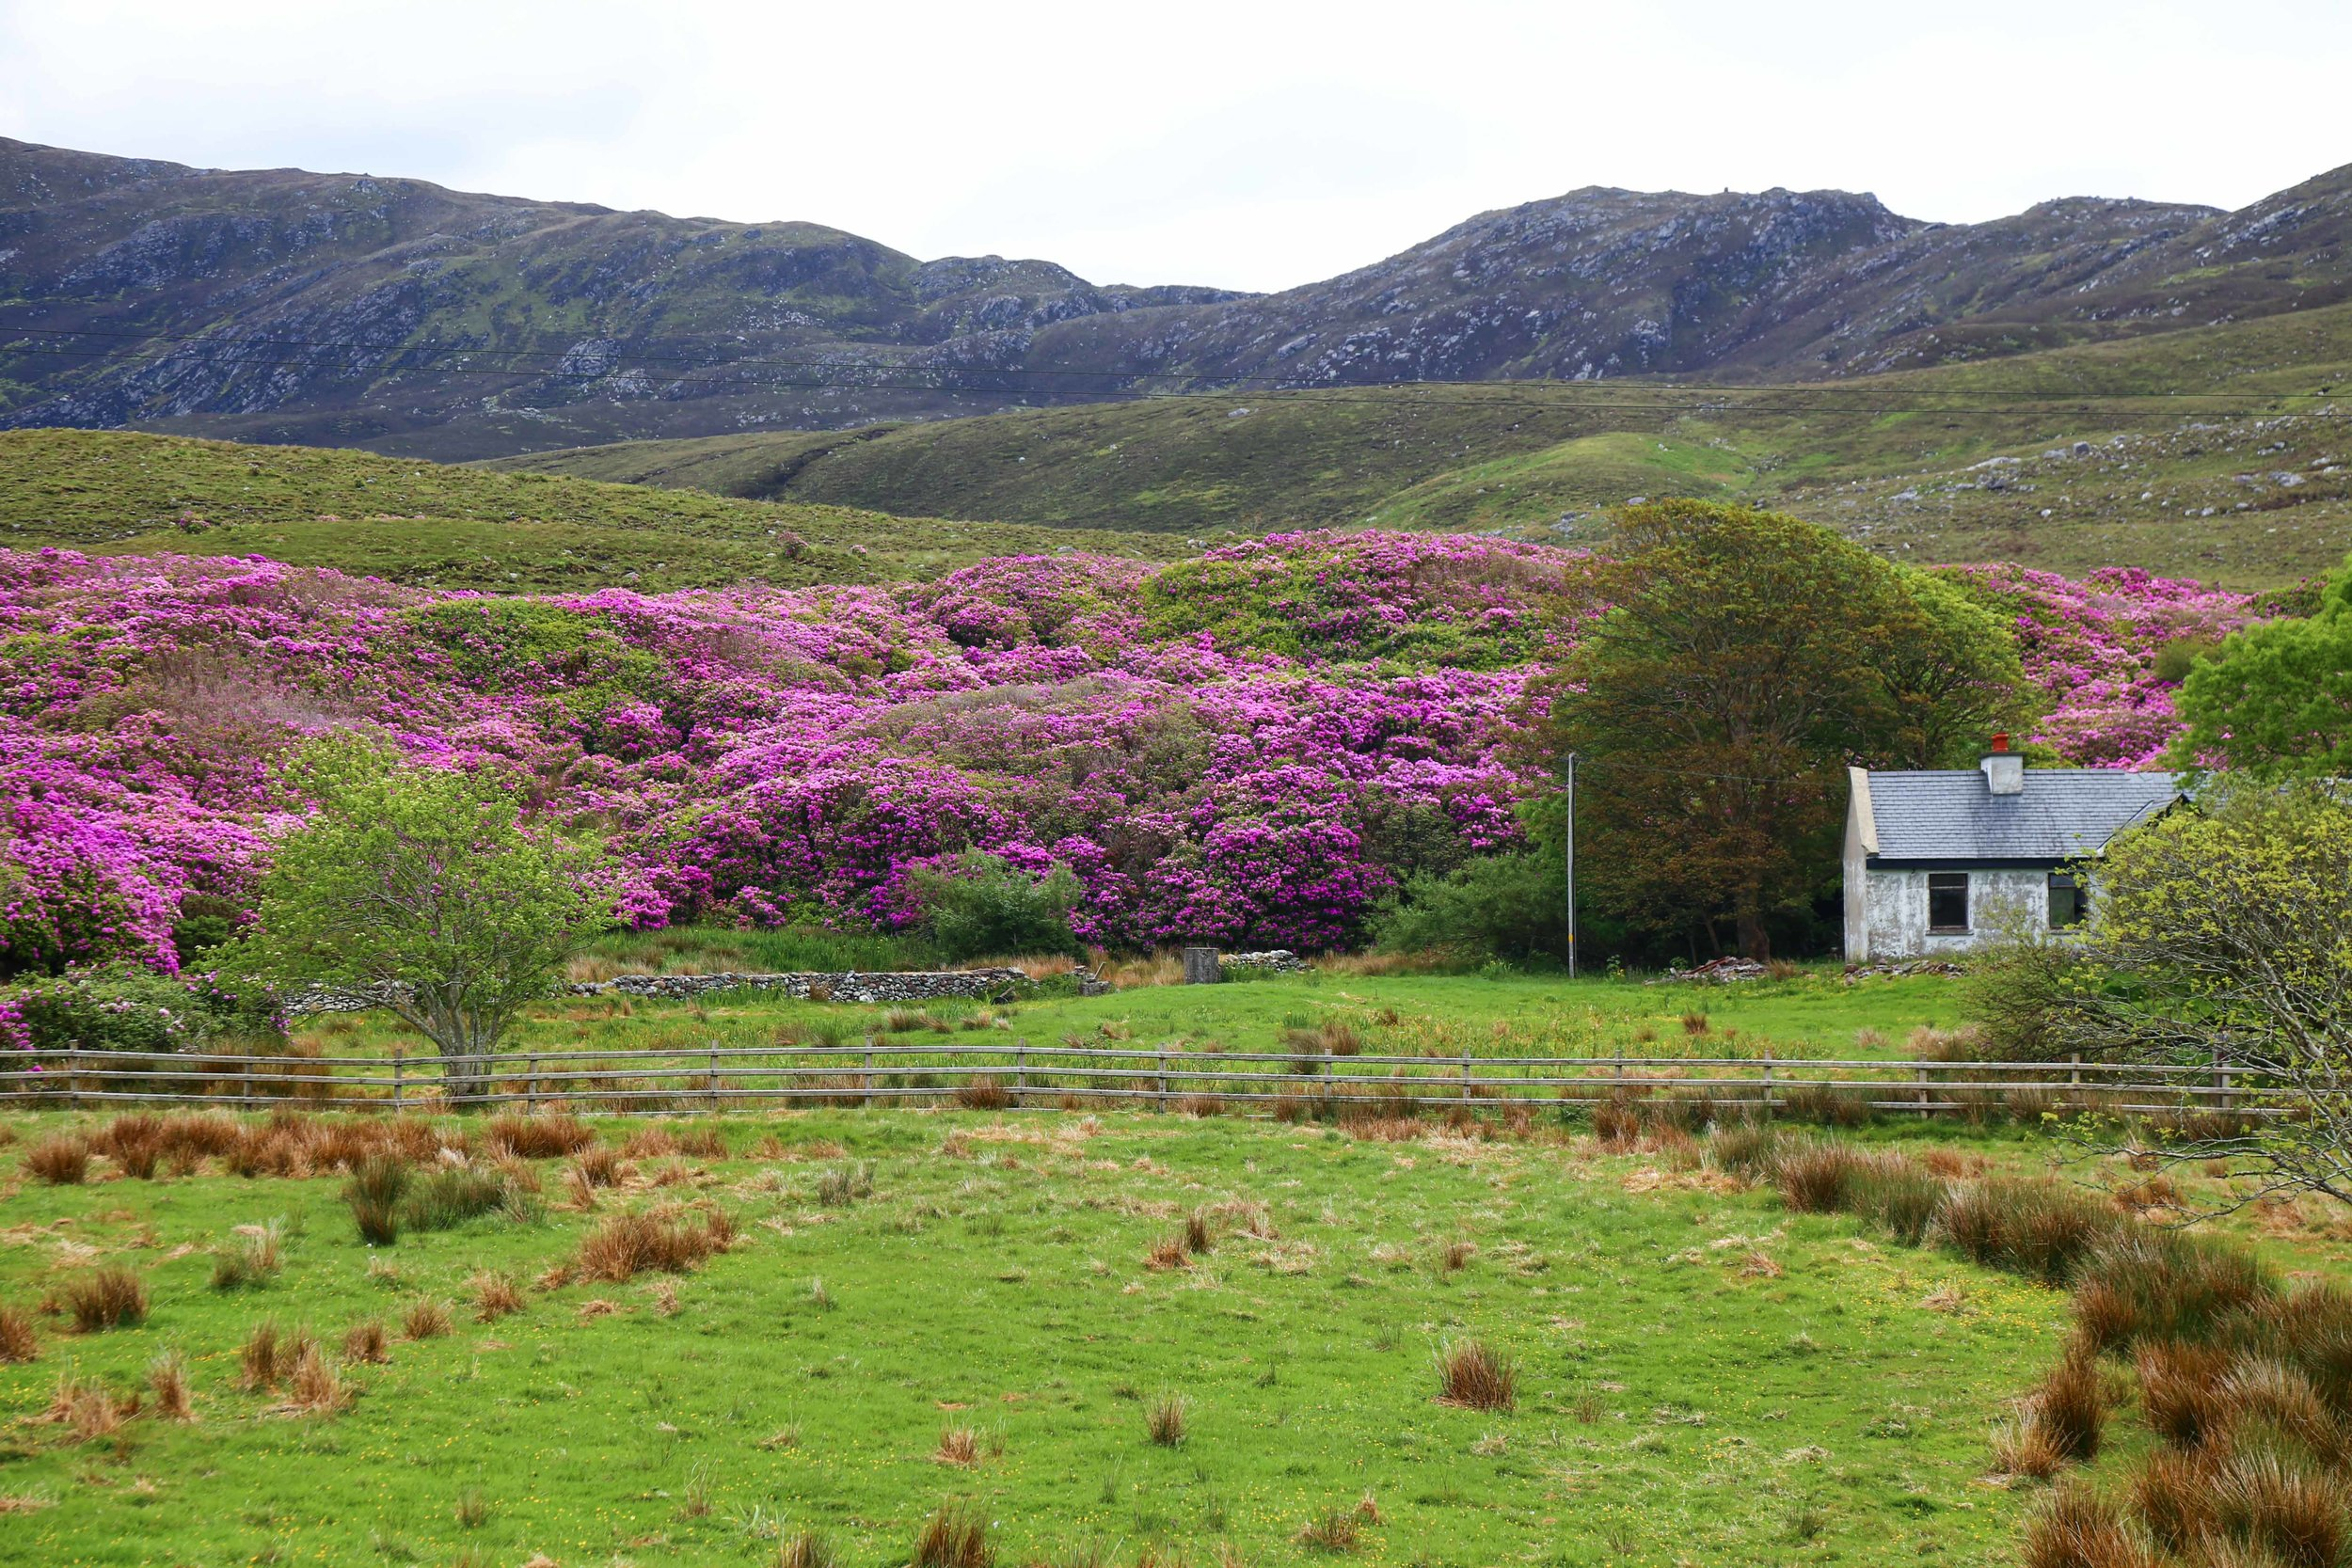 The waxy evergreen plant with its pink bloom roams freely in Ireland's upland bogs, wild hillsides, native woodland and sensitive river valleys